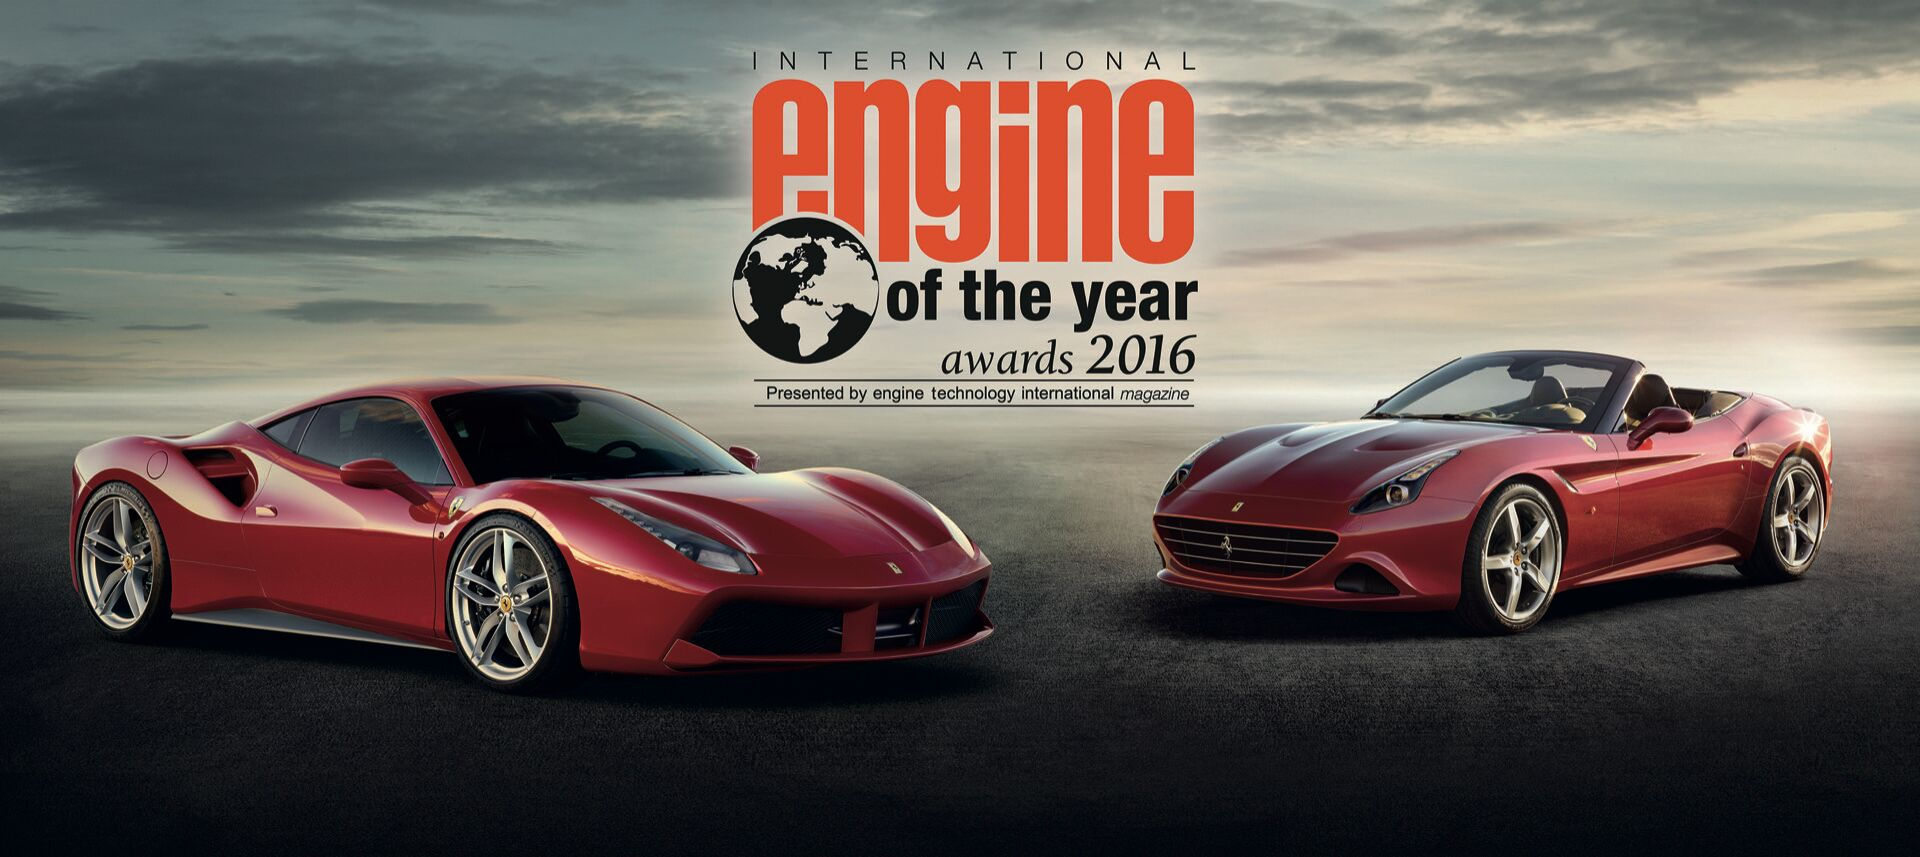 Ferrari overall winner at International Engine Awards 2016